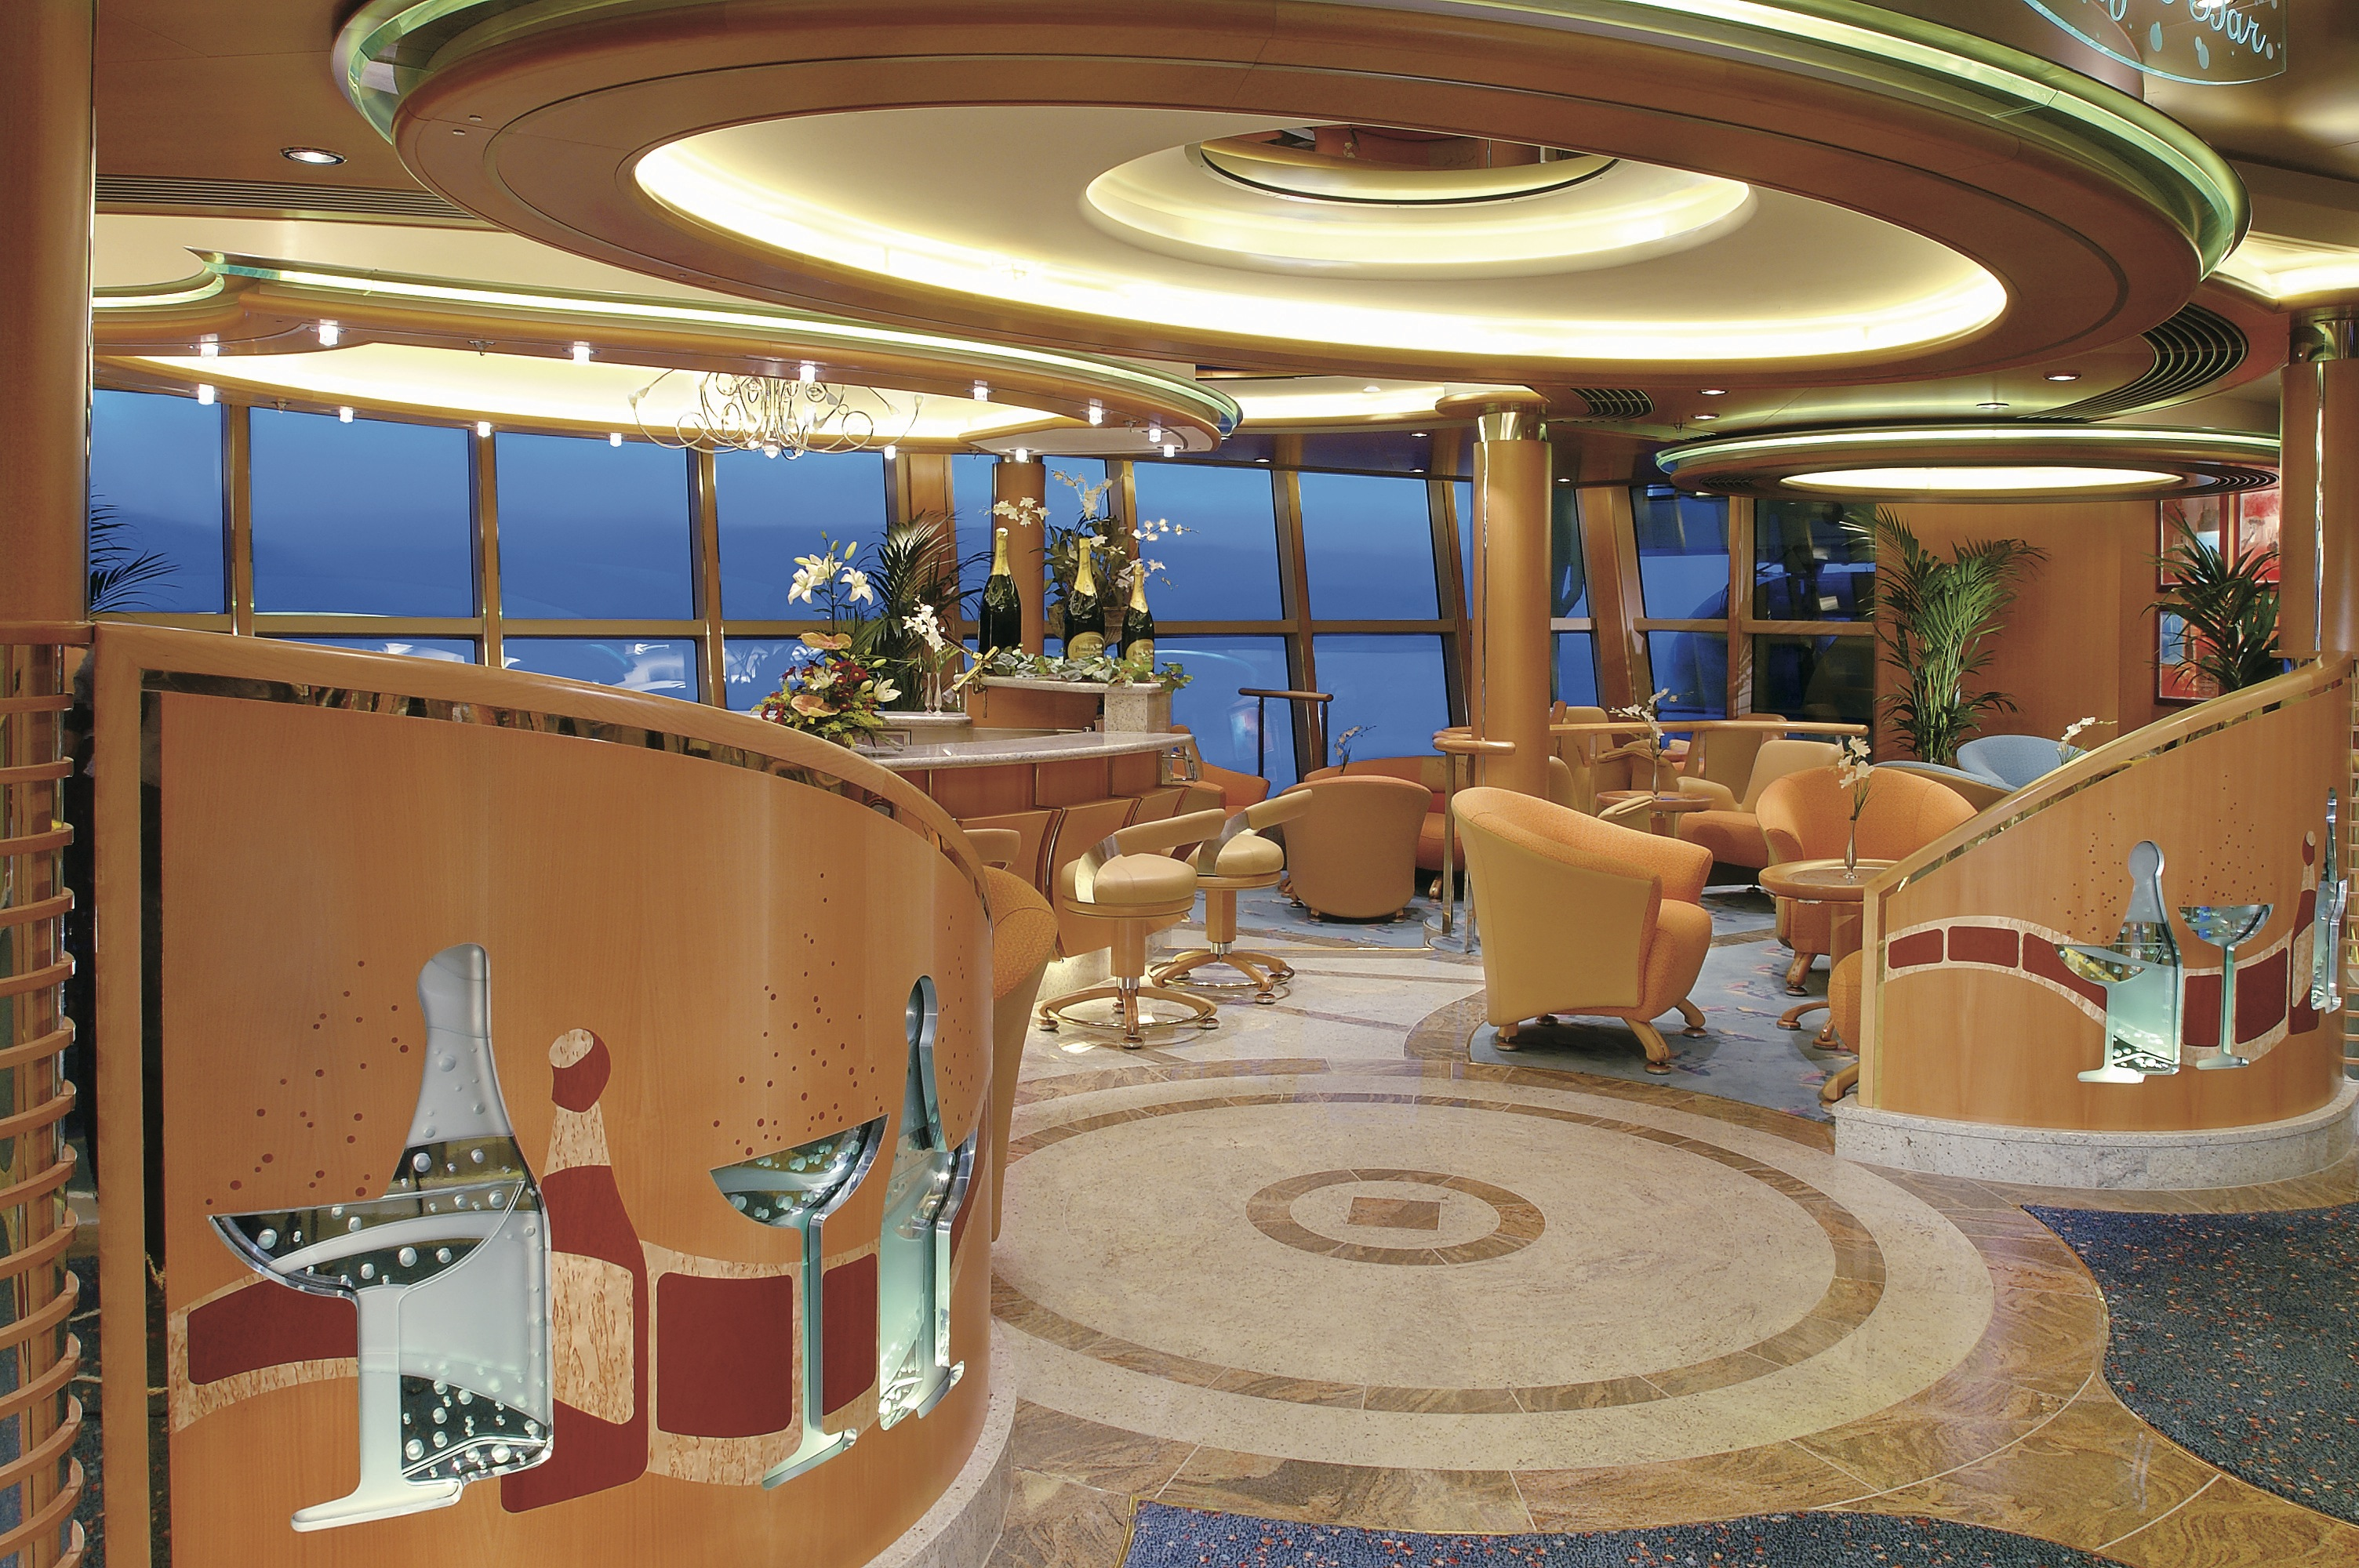 Royal Caribbean International Jewel of the Seas Interior Champagne Bar.jpeg